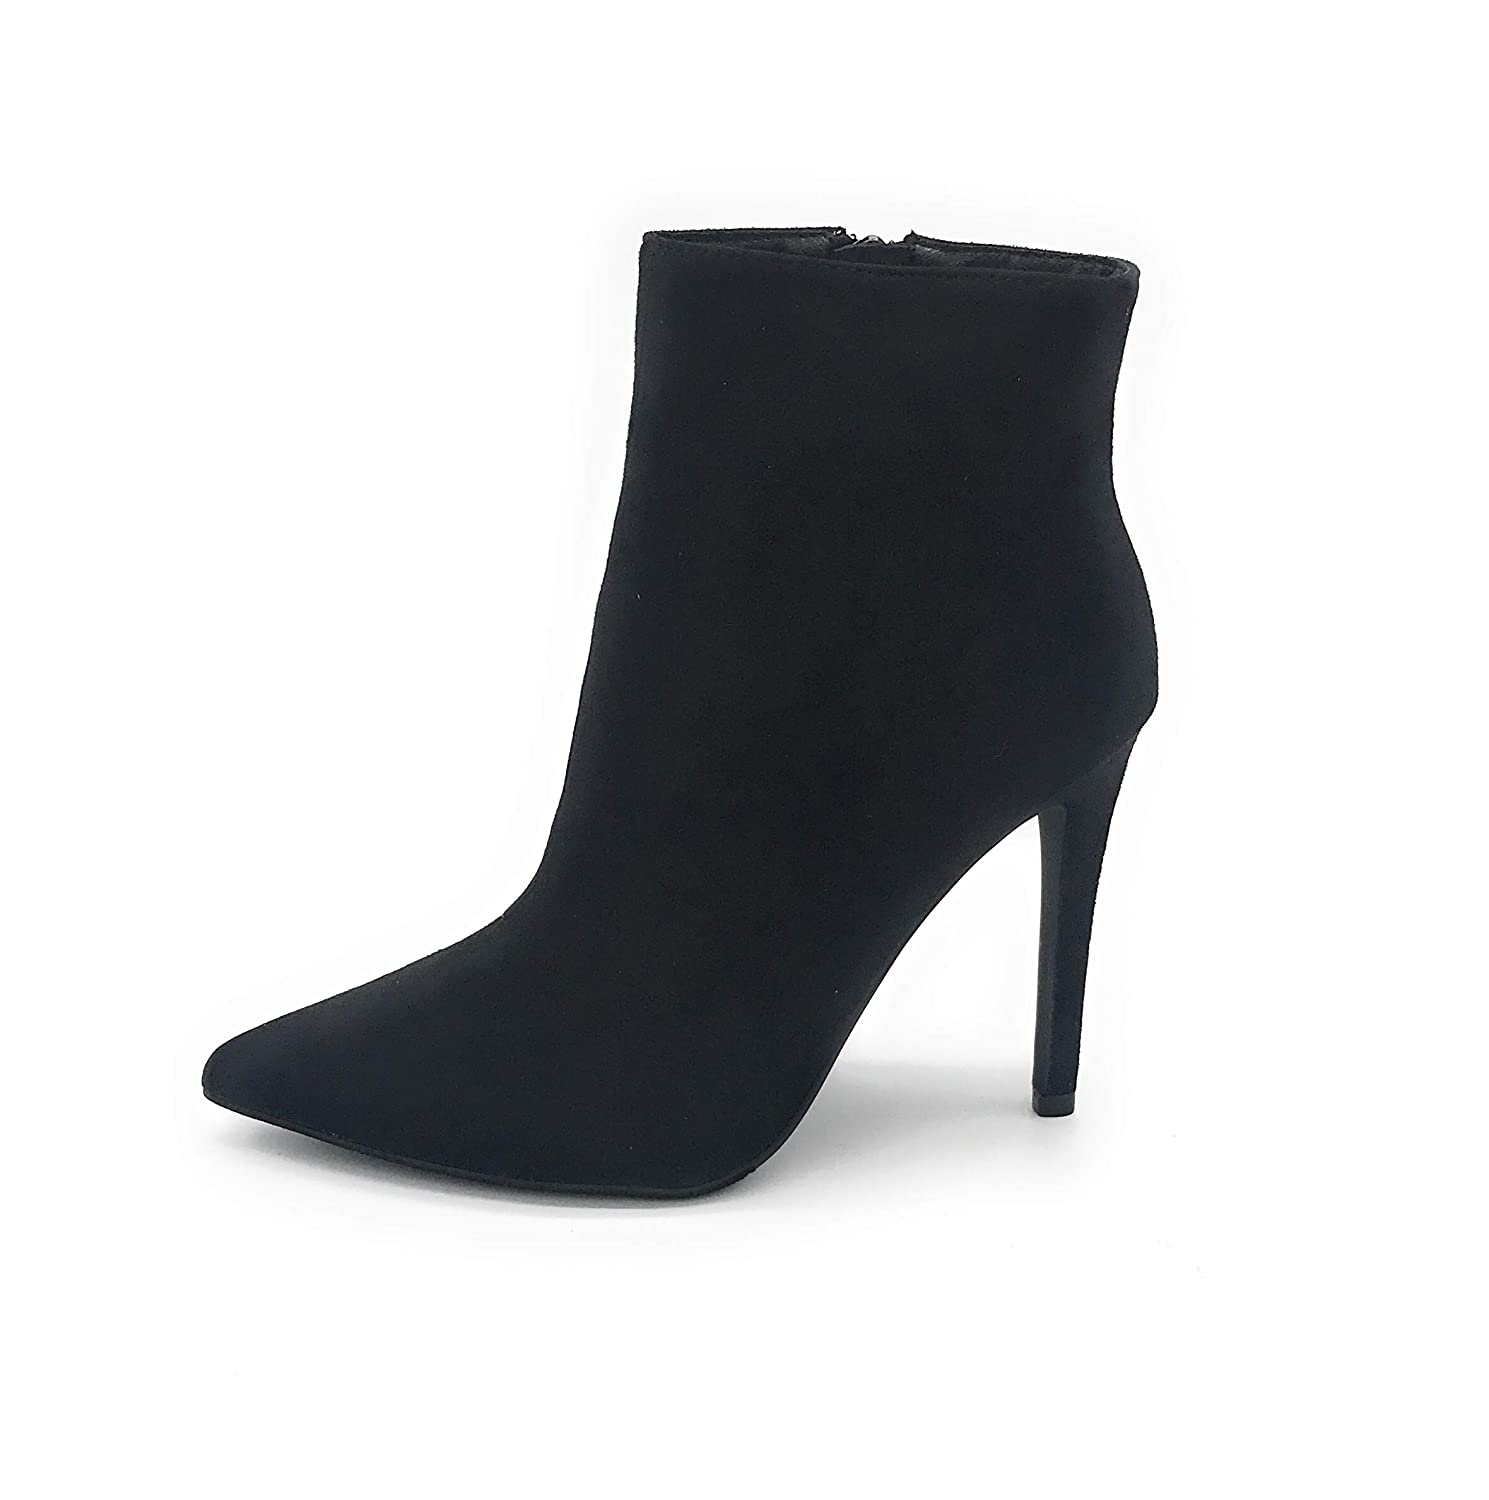 04black J Mark EASY21 Women Fashion Ankle Rhinestone Boots Casual Short Bootie shoes